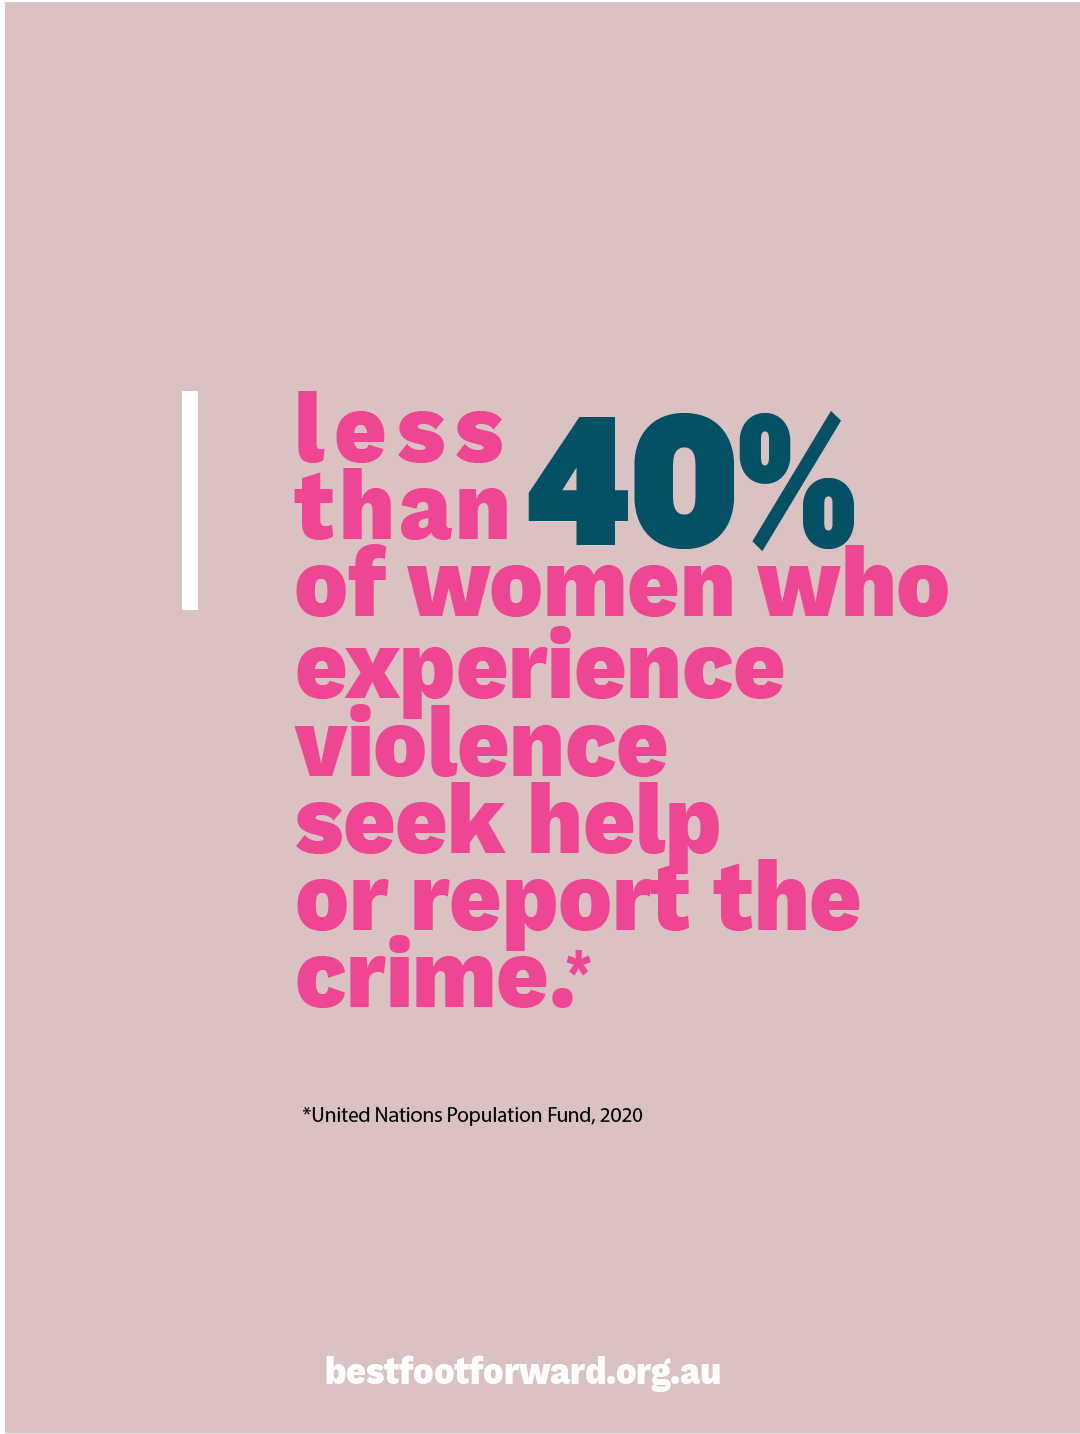 Fast Facts #2 - 40% don't get help